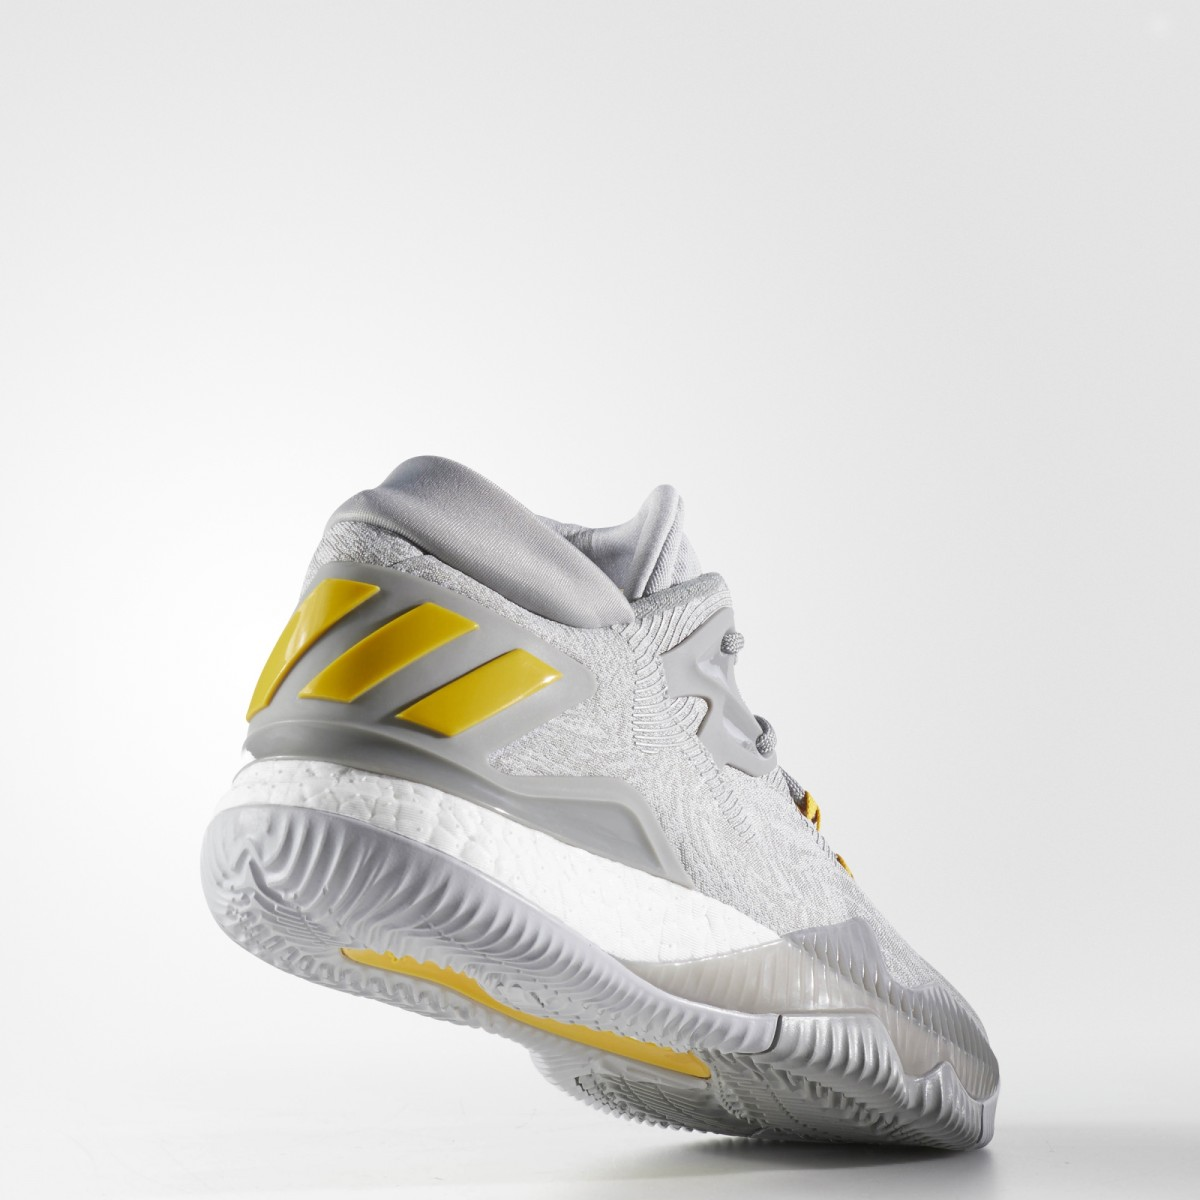 Adidas Crazy Light Boost 2016 'Grey' CQ1199